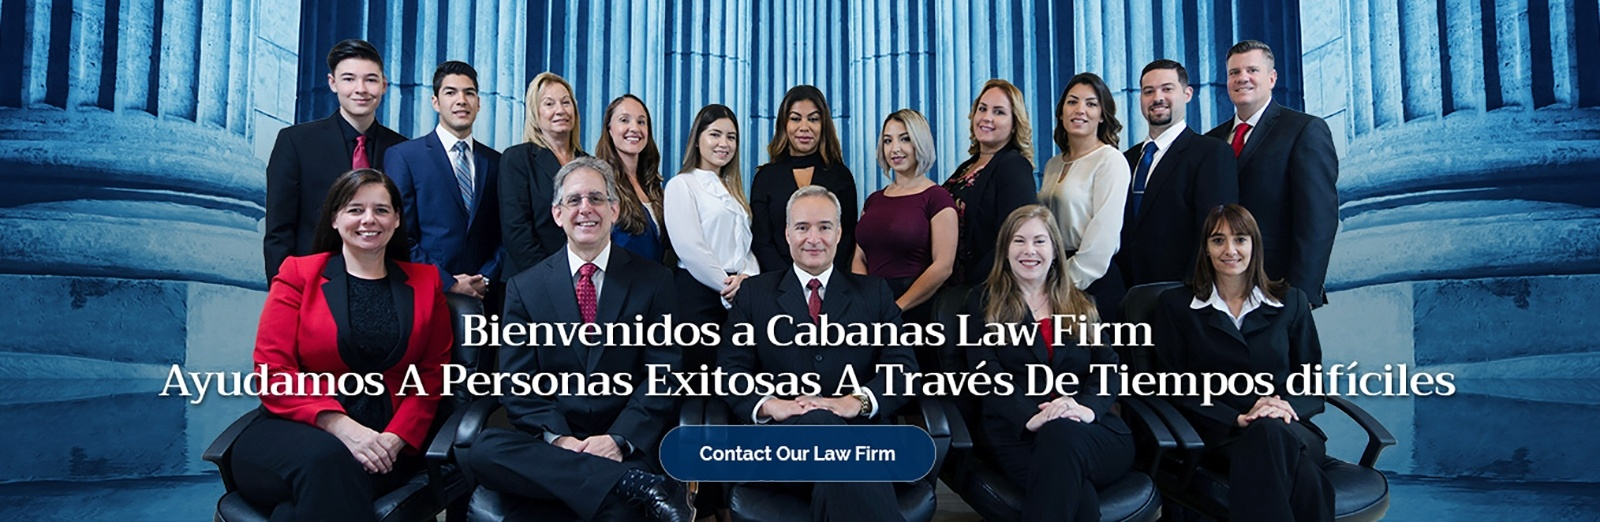 Prestigious Law Firm Pembroke Pines FL